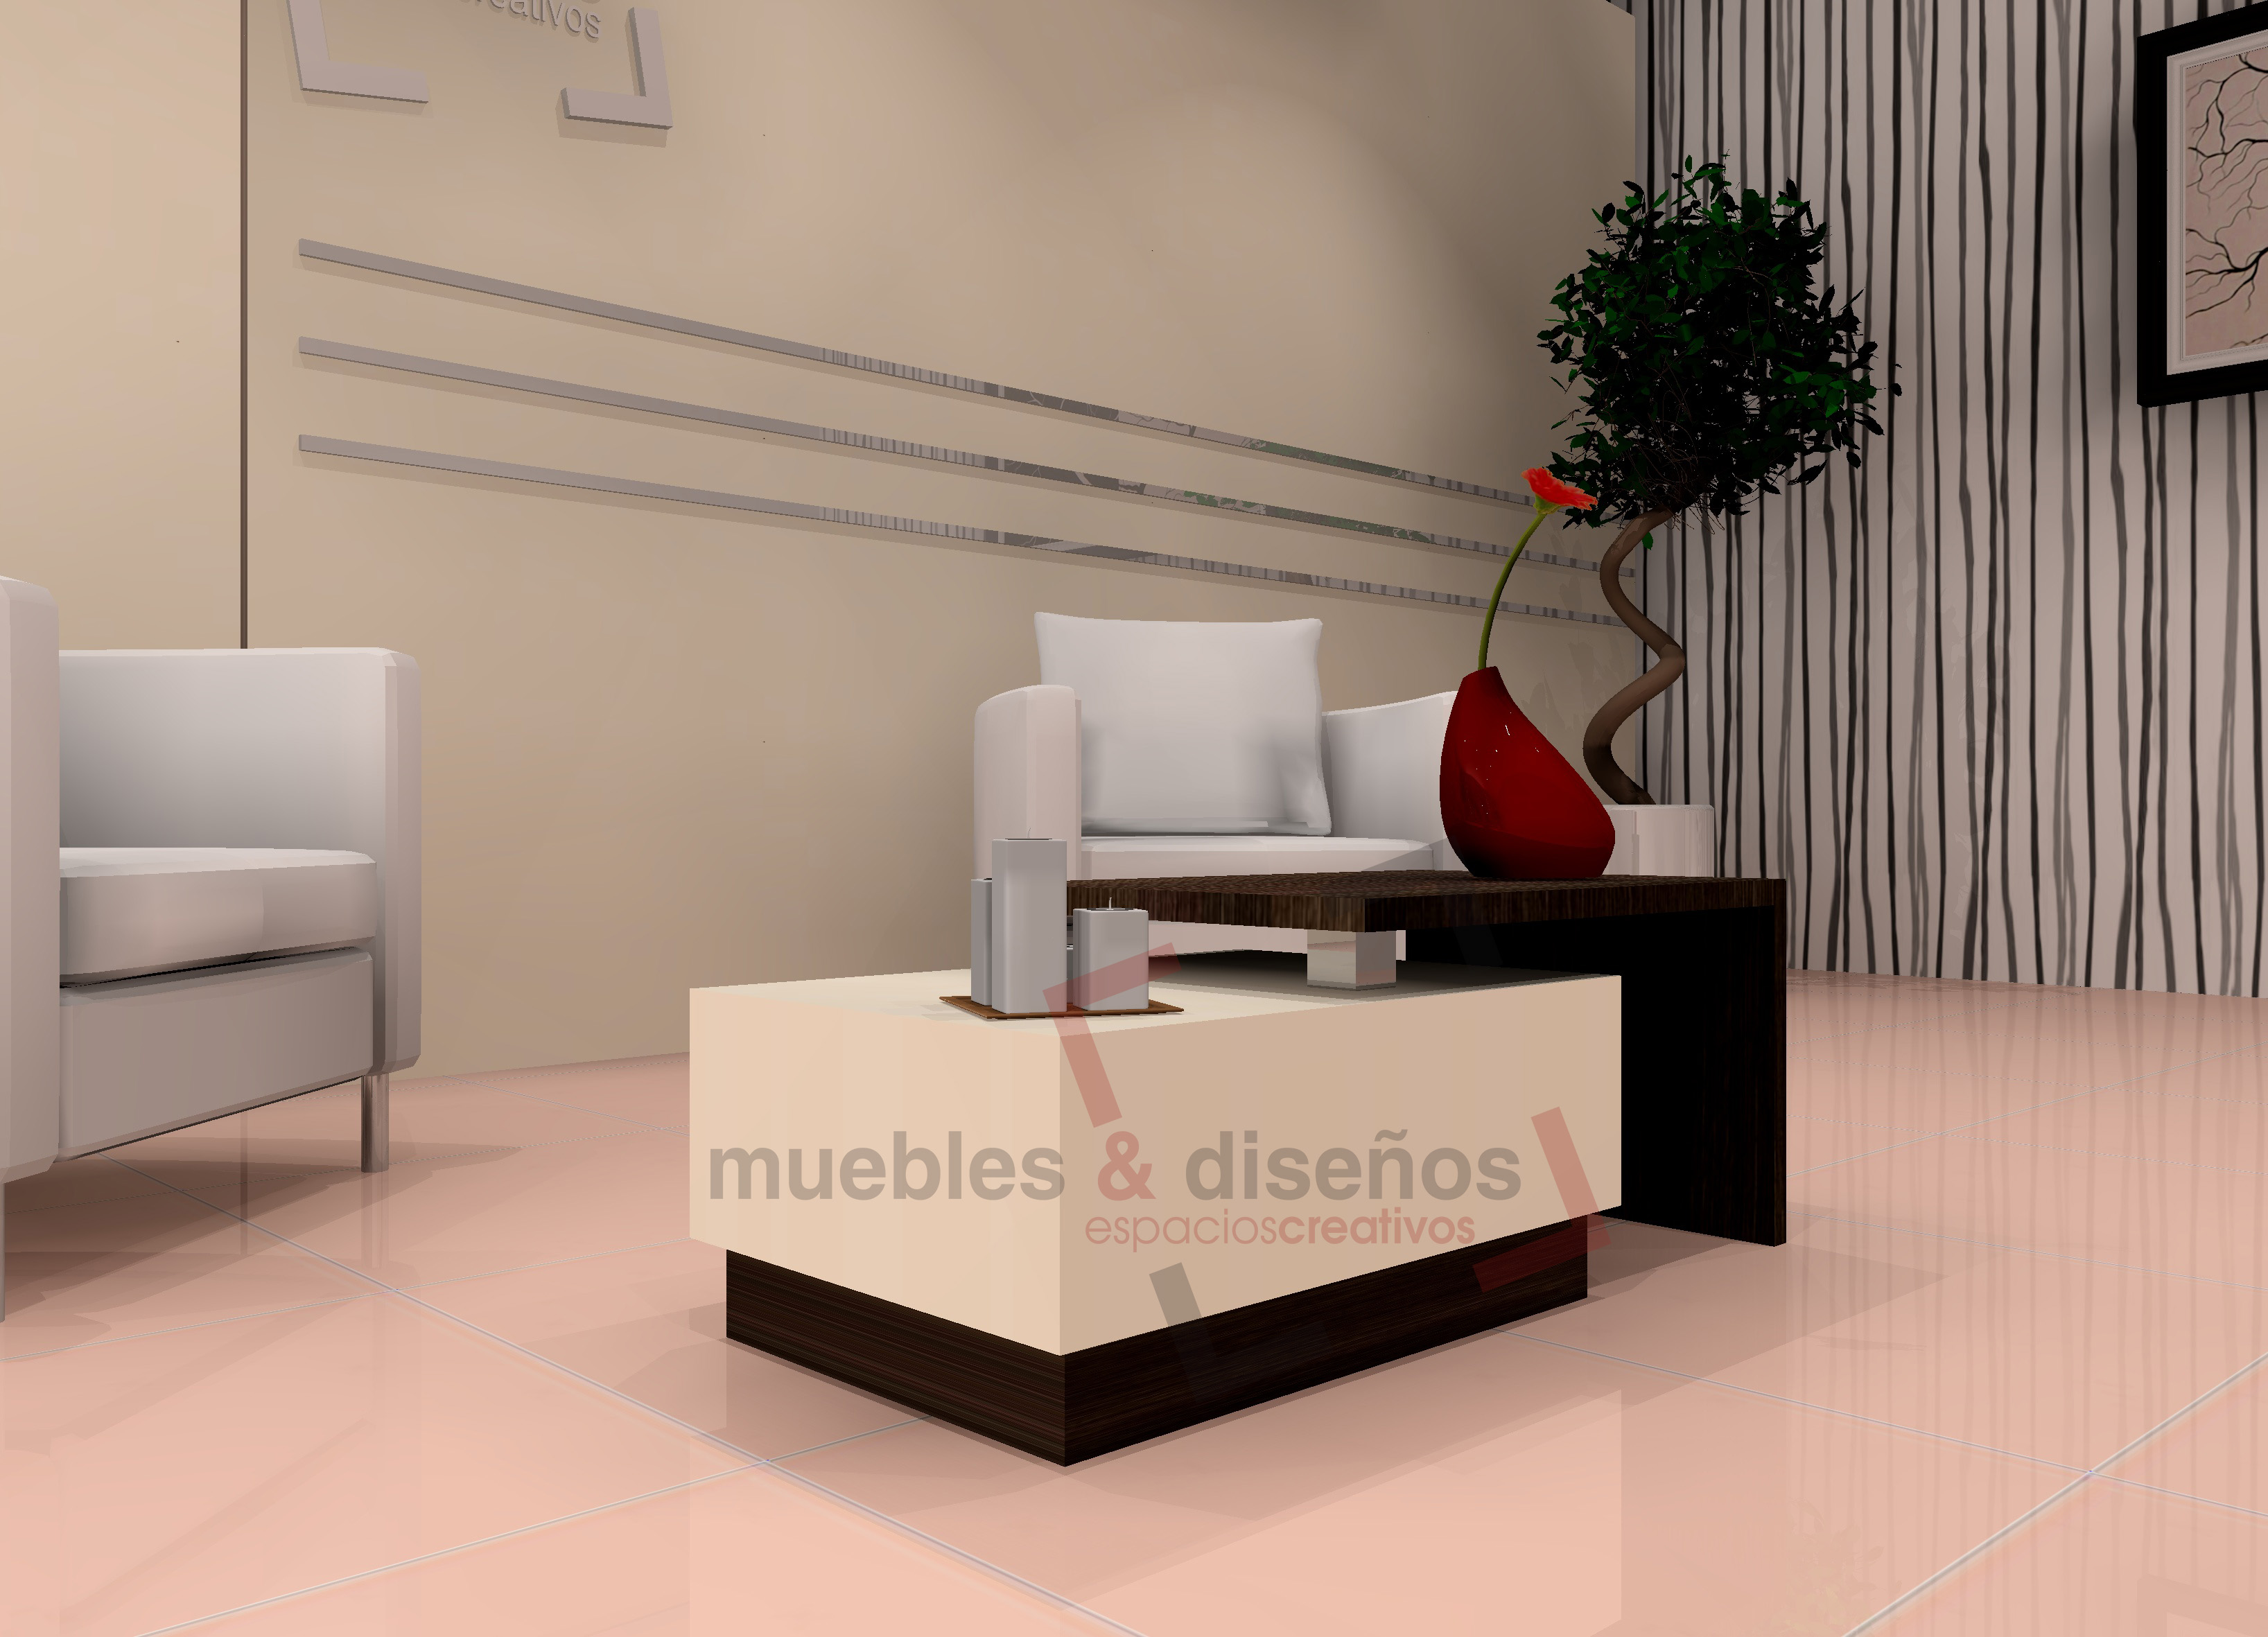 Projects 4 Muebles Y Dise Os Part 17 # Muebles Y Disenos